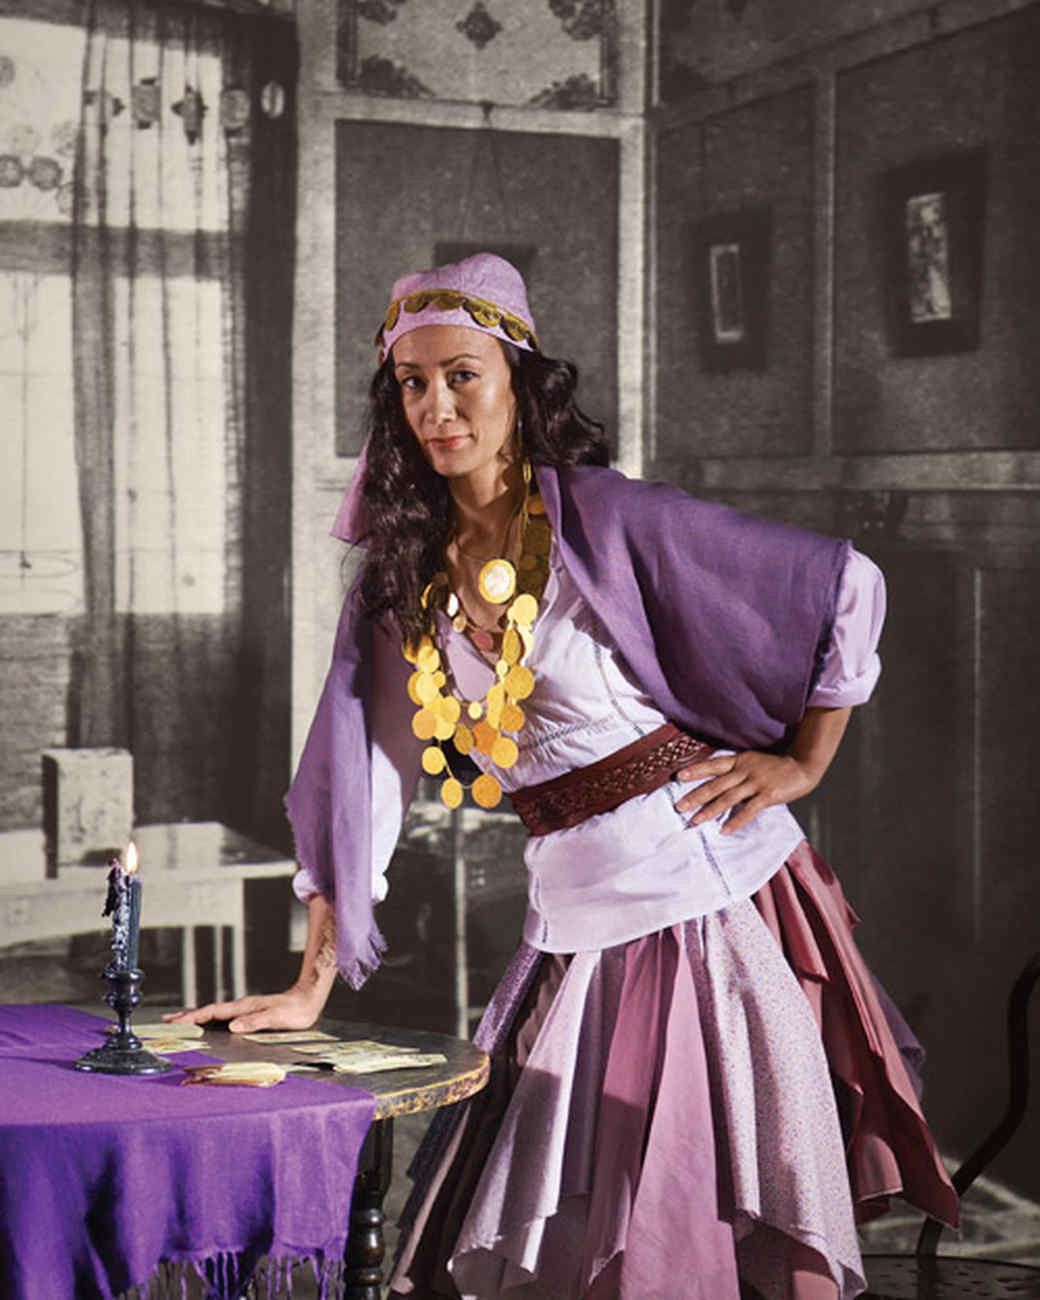 Best ideas about Gypsy DIY Costume . Save or Pin Fortune Teller Costume Now.